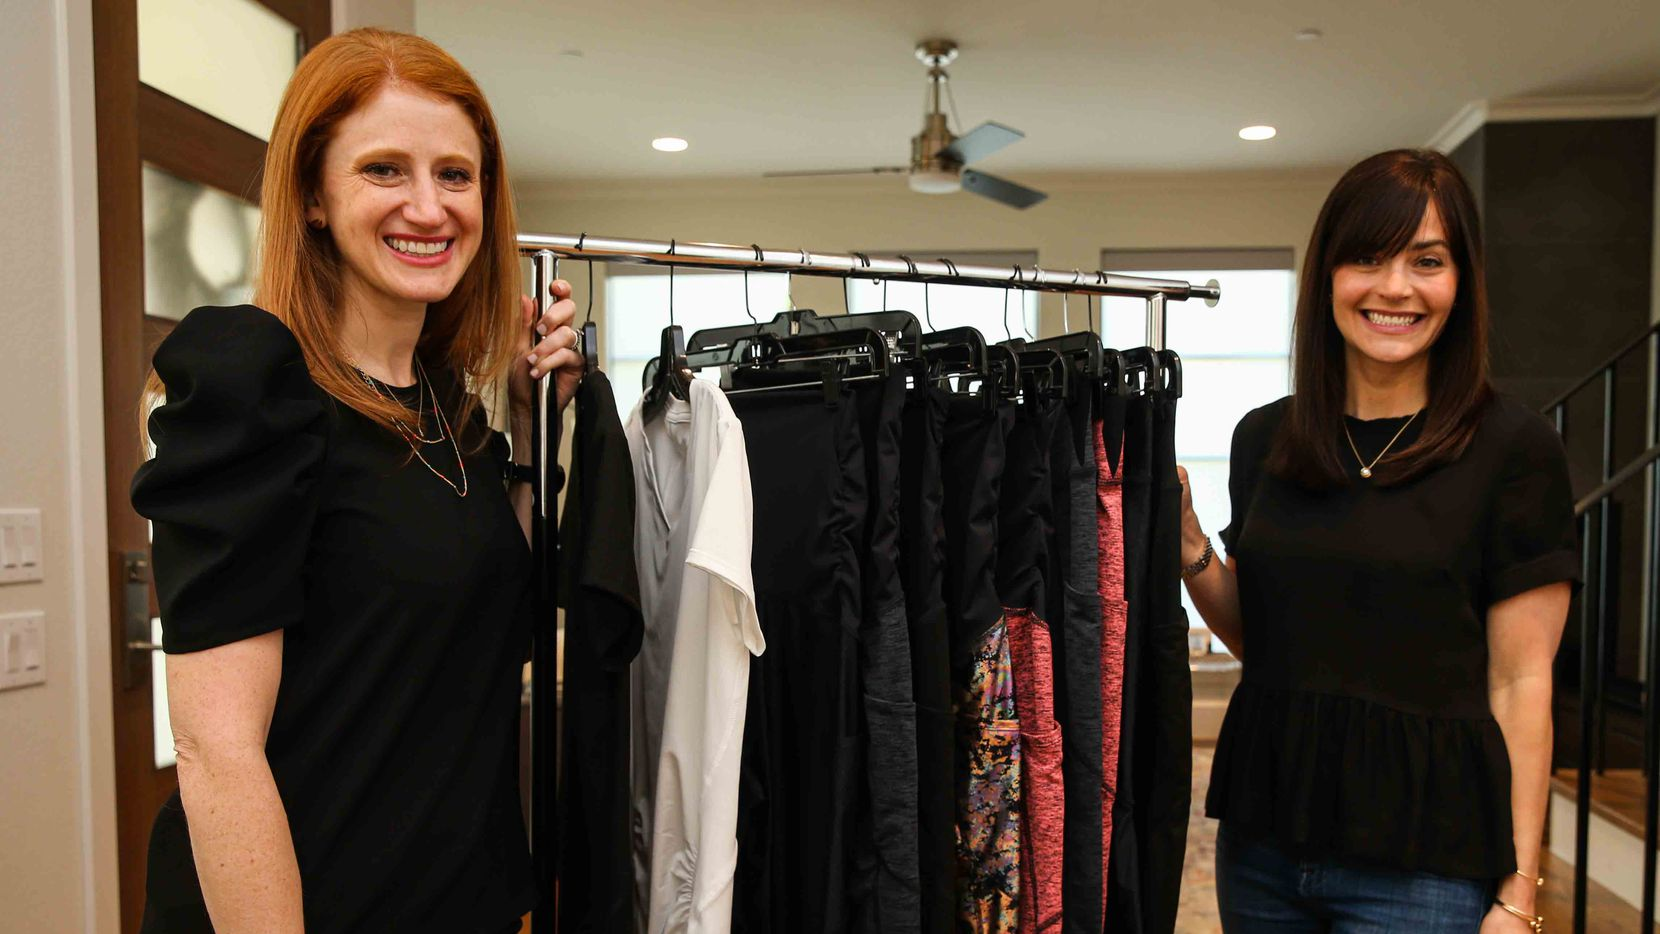 Hillary Cullum (left) and Loren Heller started Berkley Clothing, a luxury maternity fitness line designed for continued wear during and shortly after pregnancy.